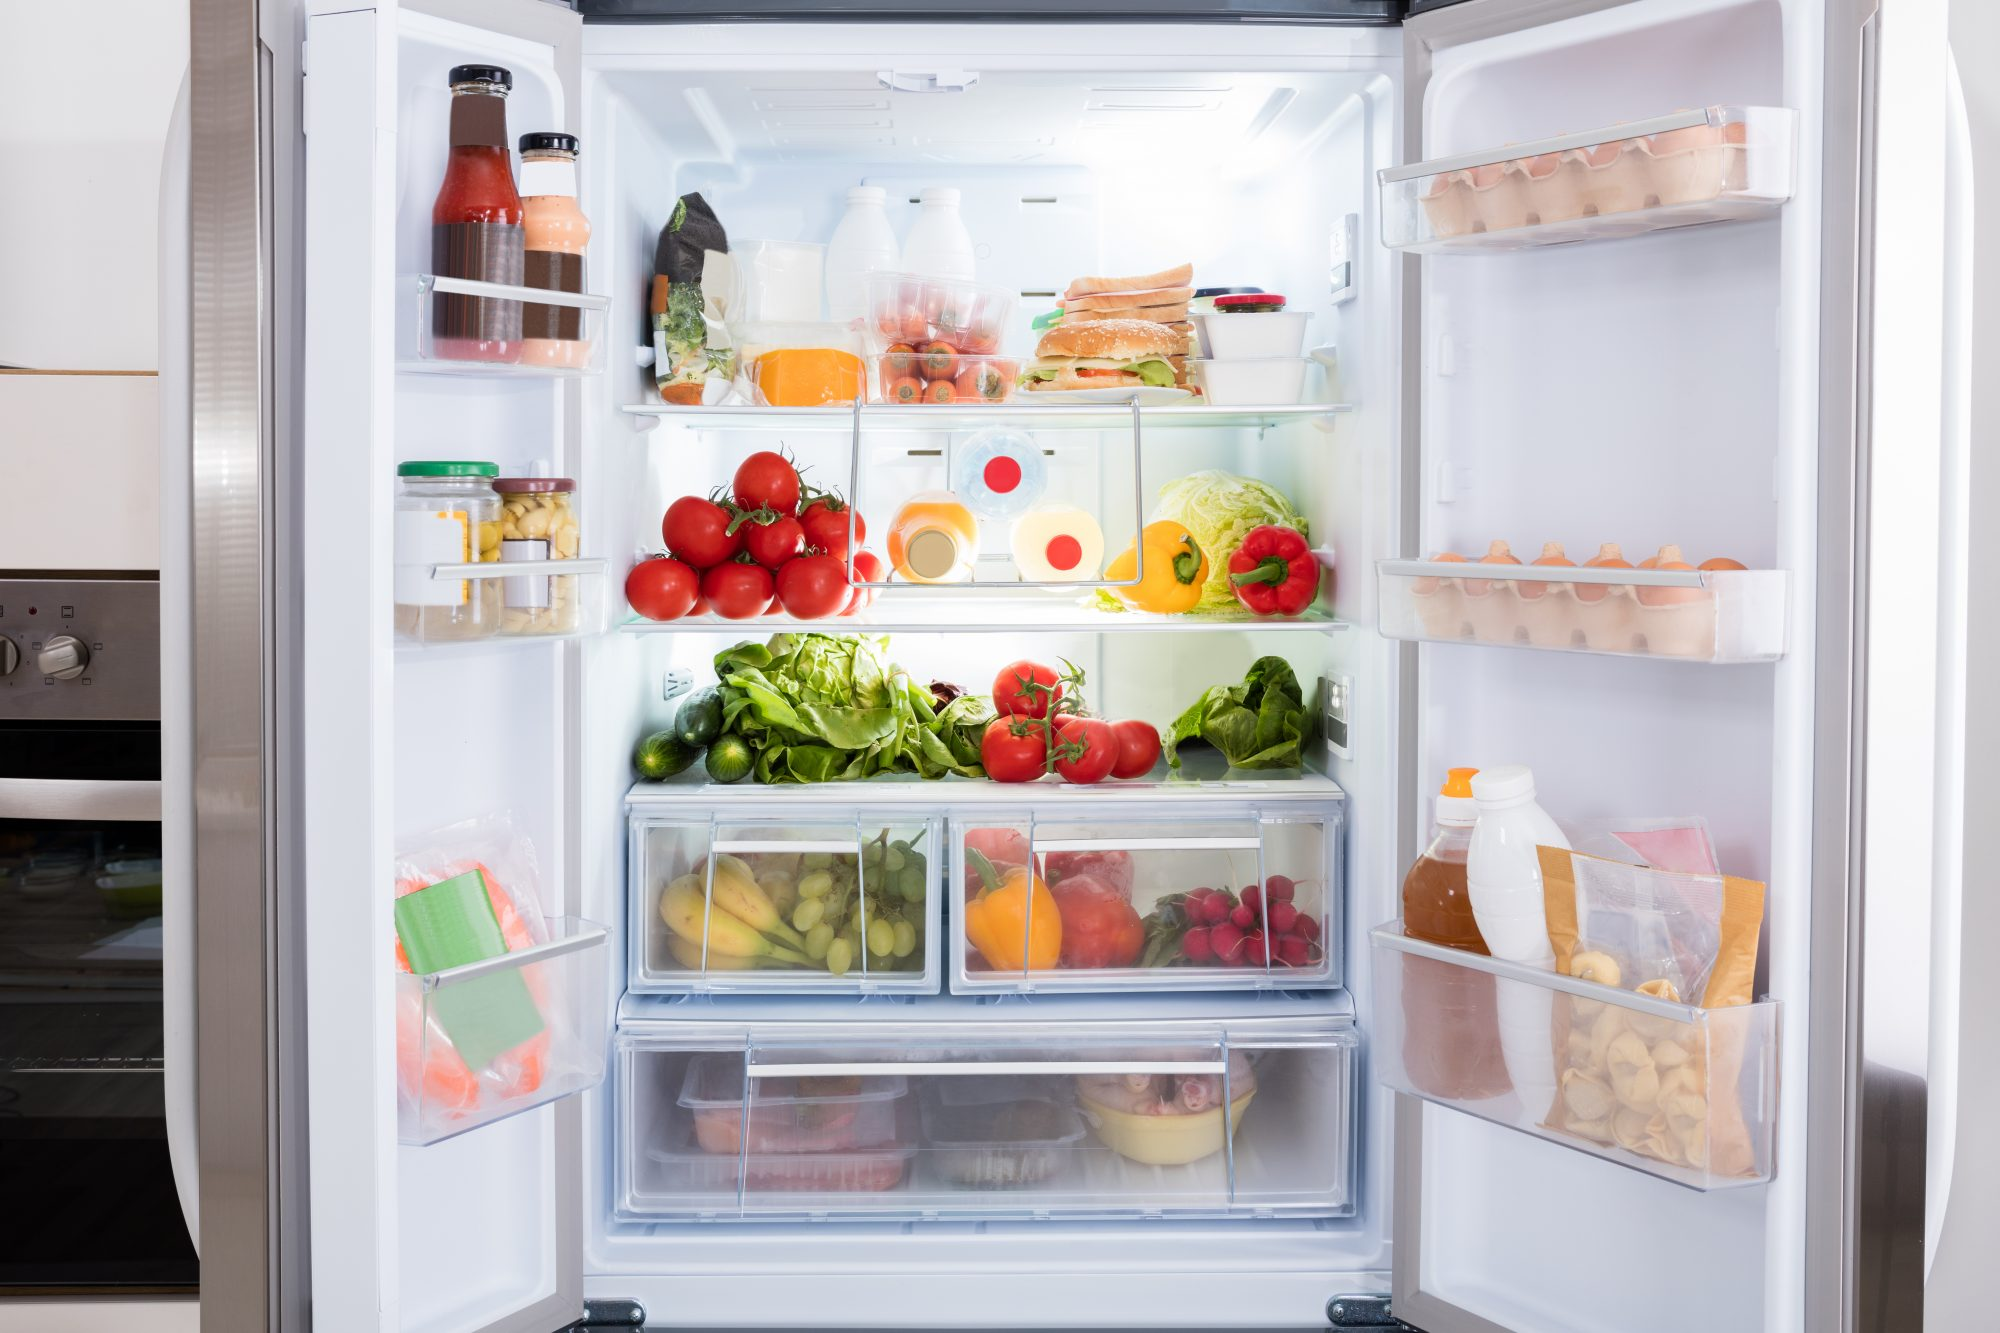 Awesome Meal Ideas for When You're Cleaning Out Your Fridge